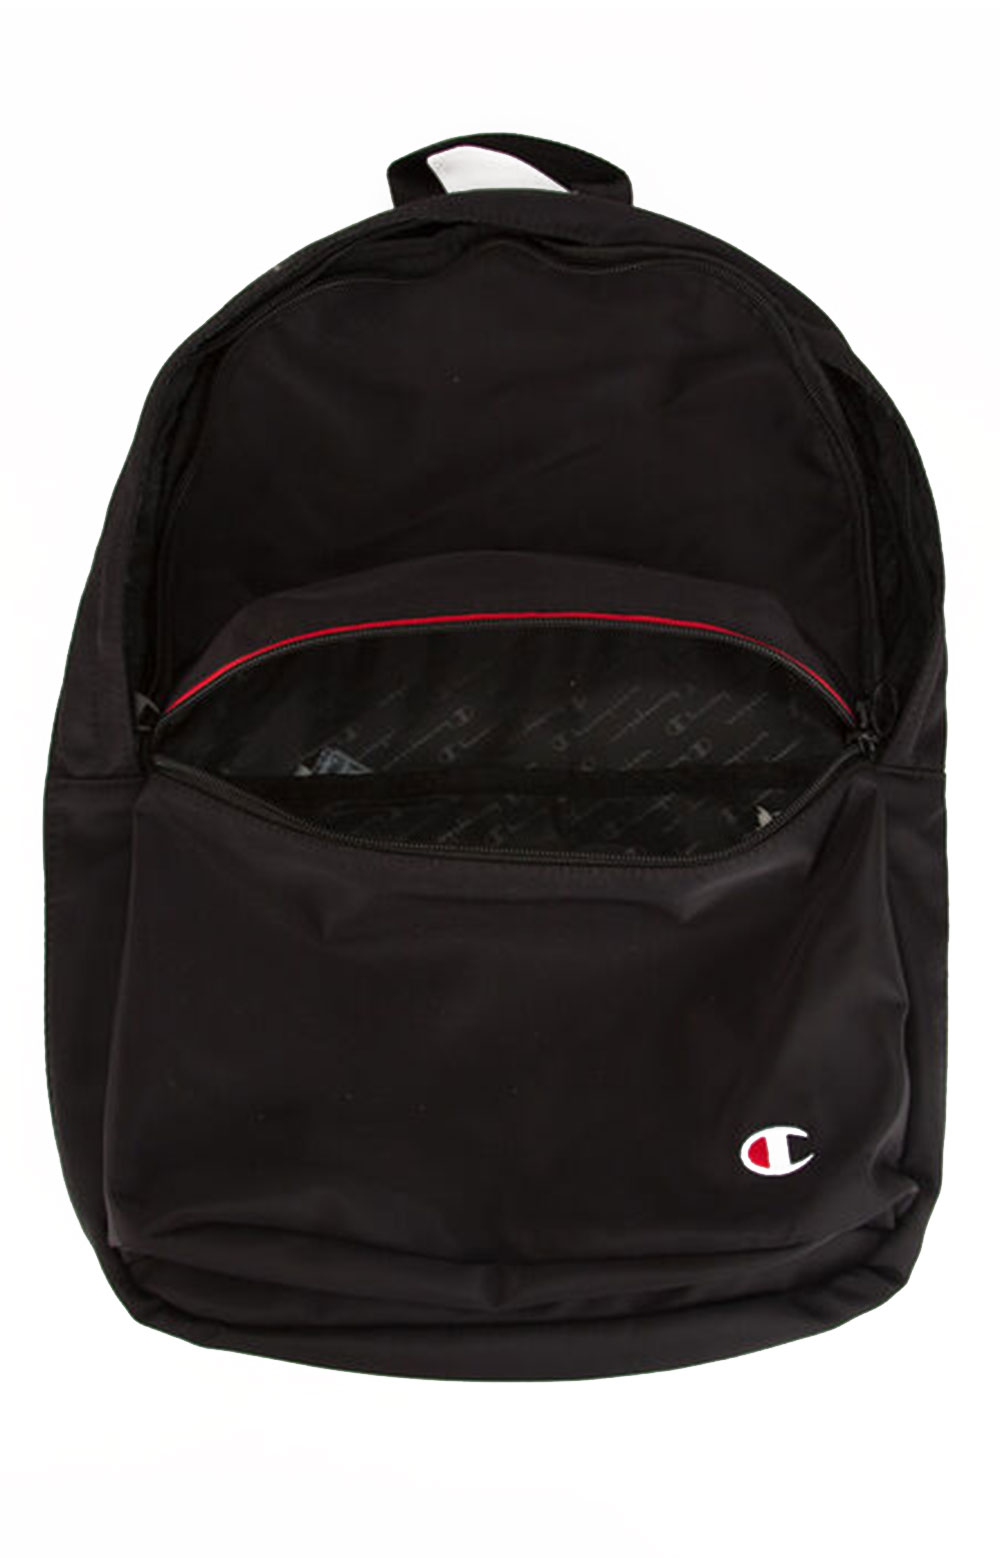 (CH1100) Champion Expander Backpack - Black  4